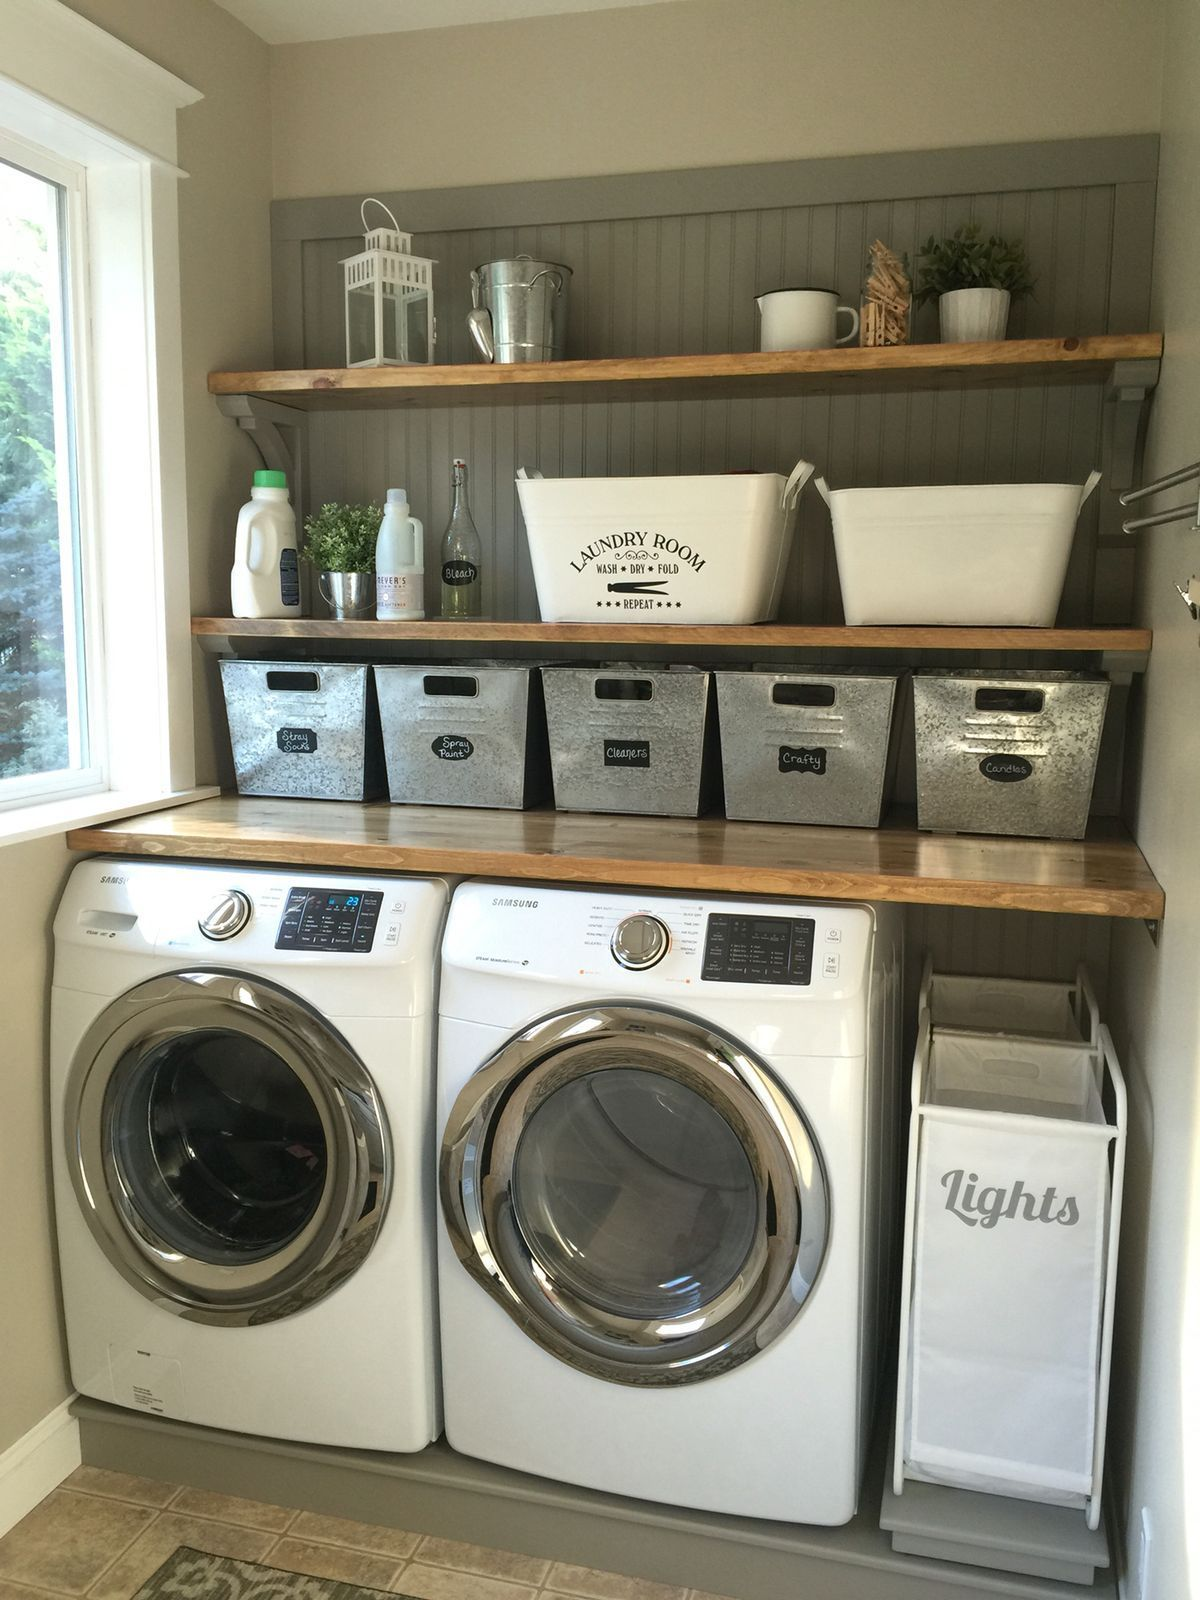 Beautiful rustic home decor project ideas you can easily diy my laundry room diy renovation on a budget